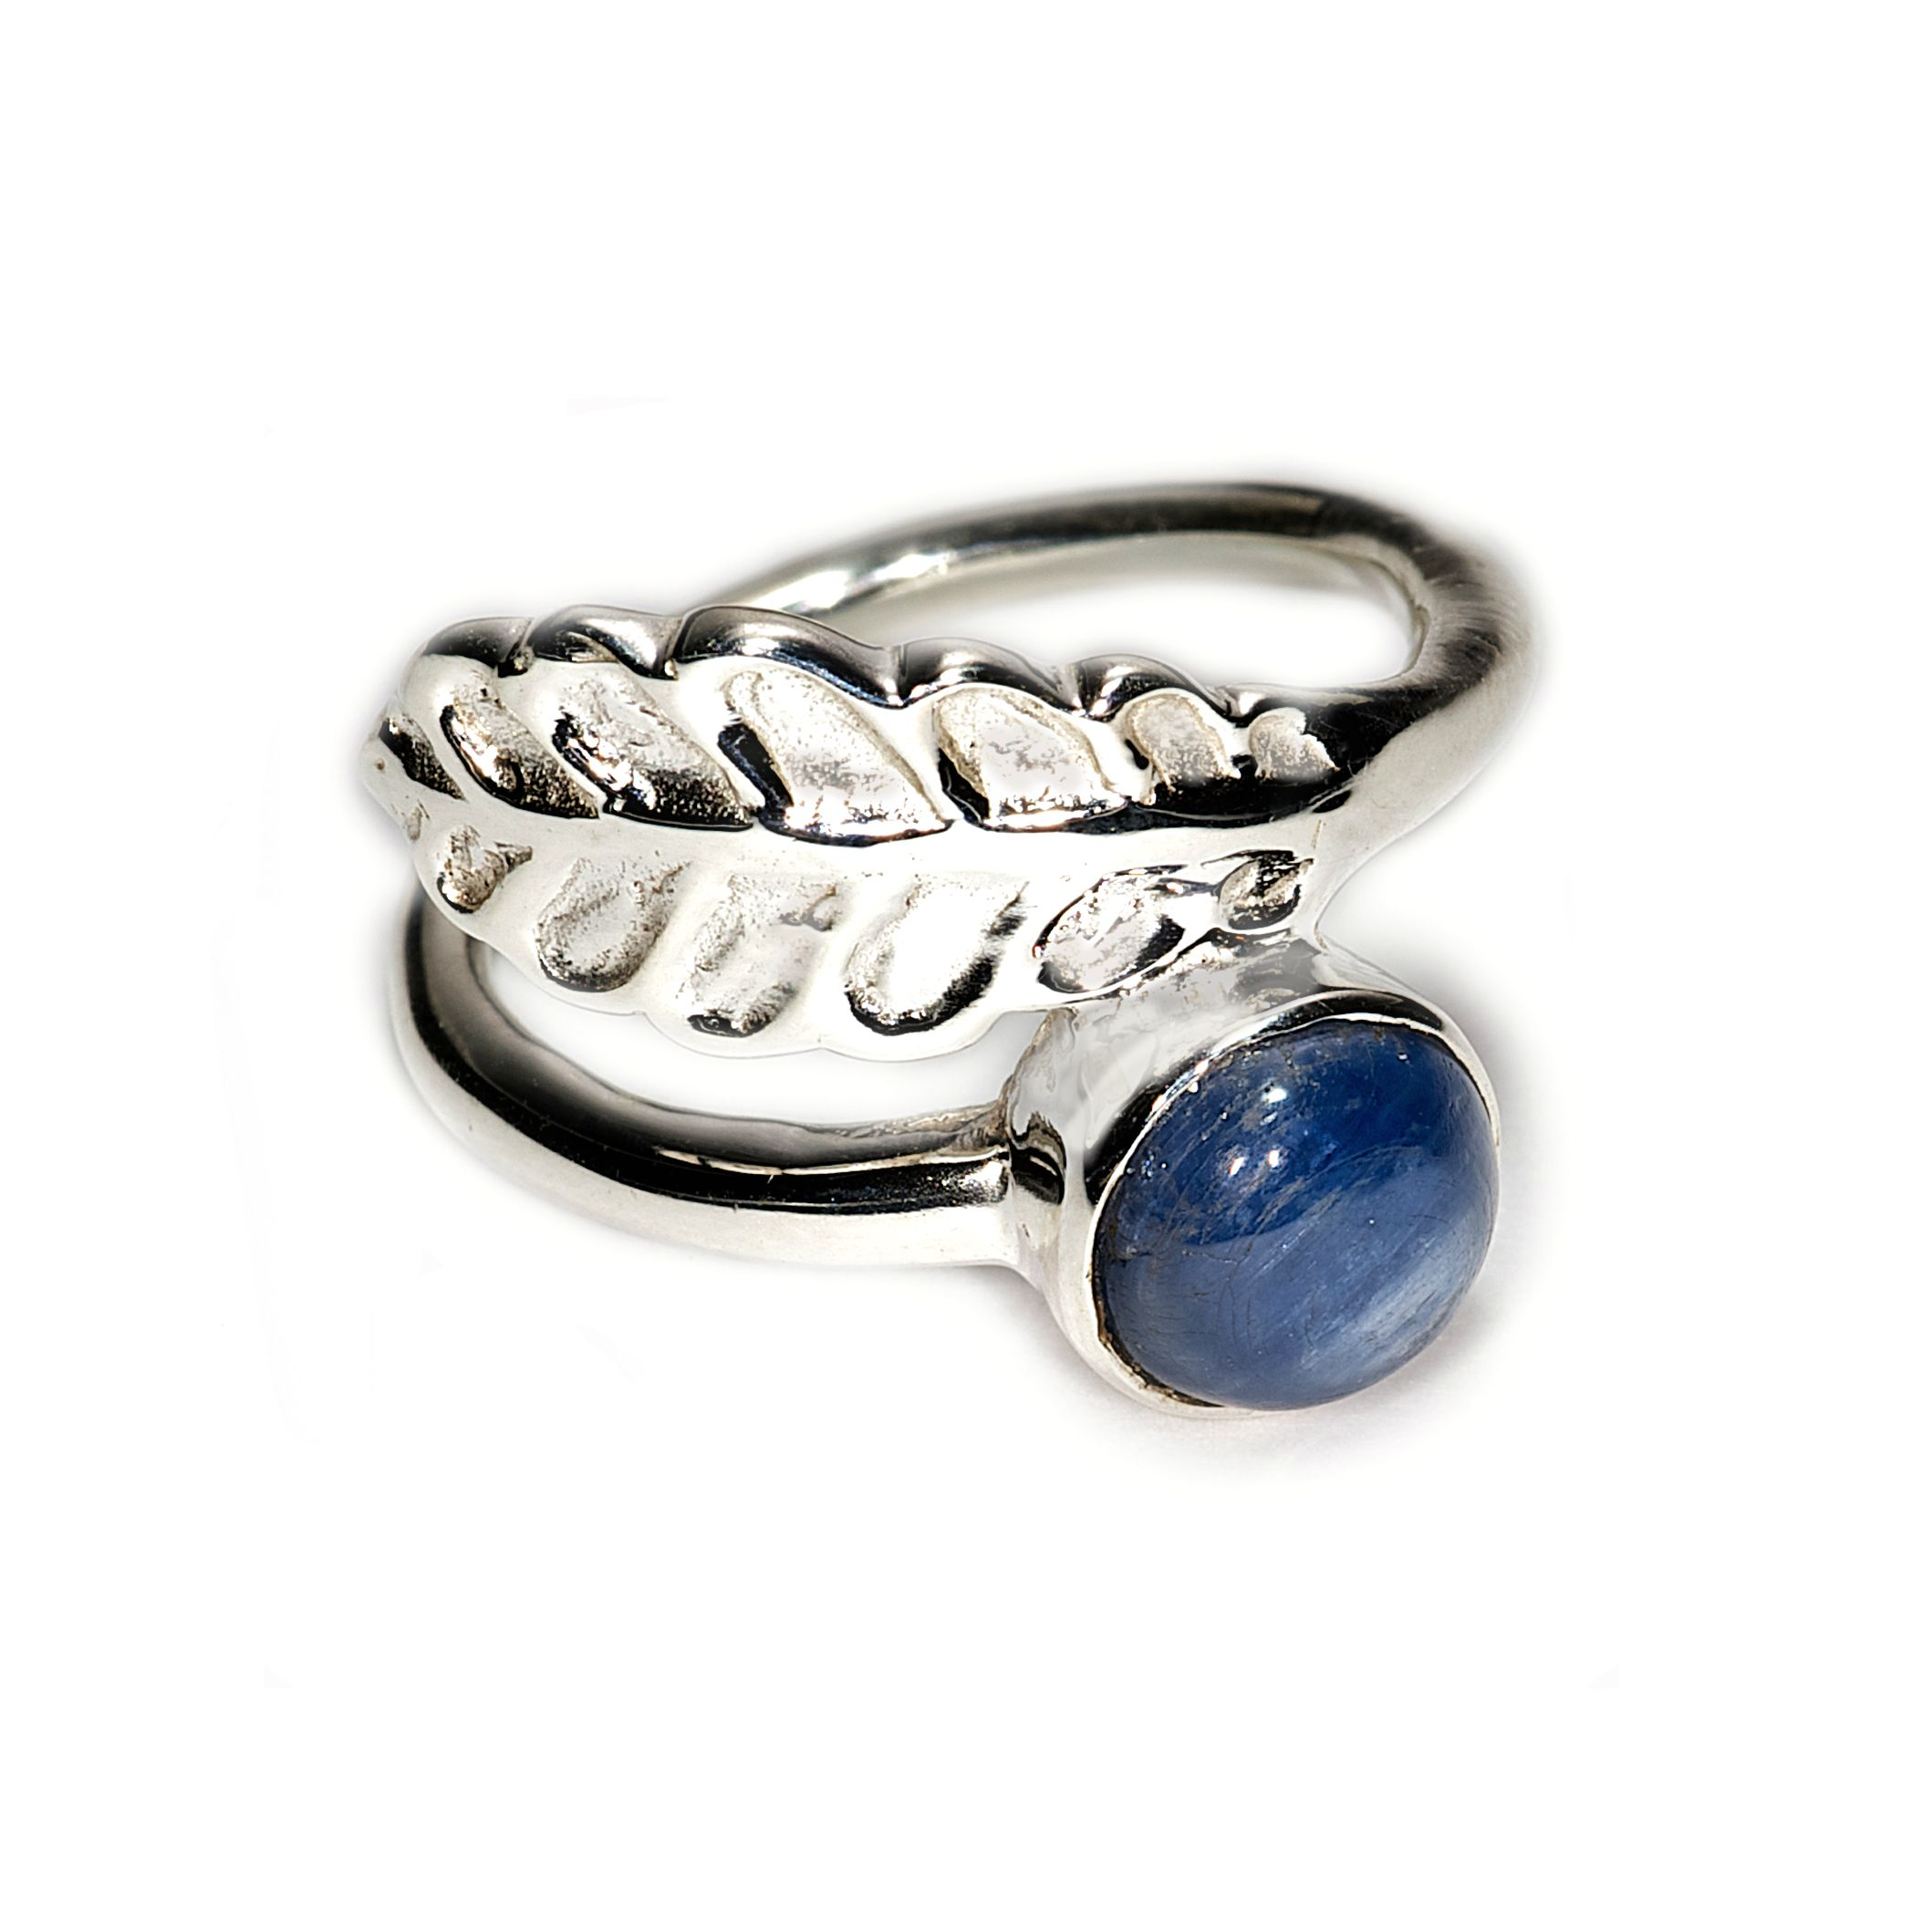 jewelry kyanite gem rings quality from solid nepal size set silver sterling store in jali ring this